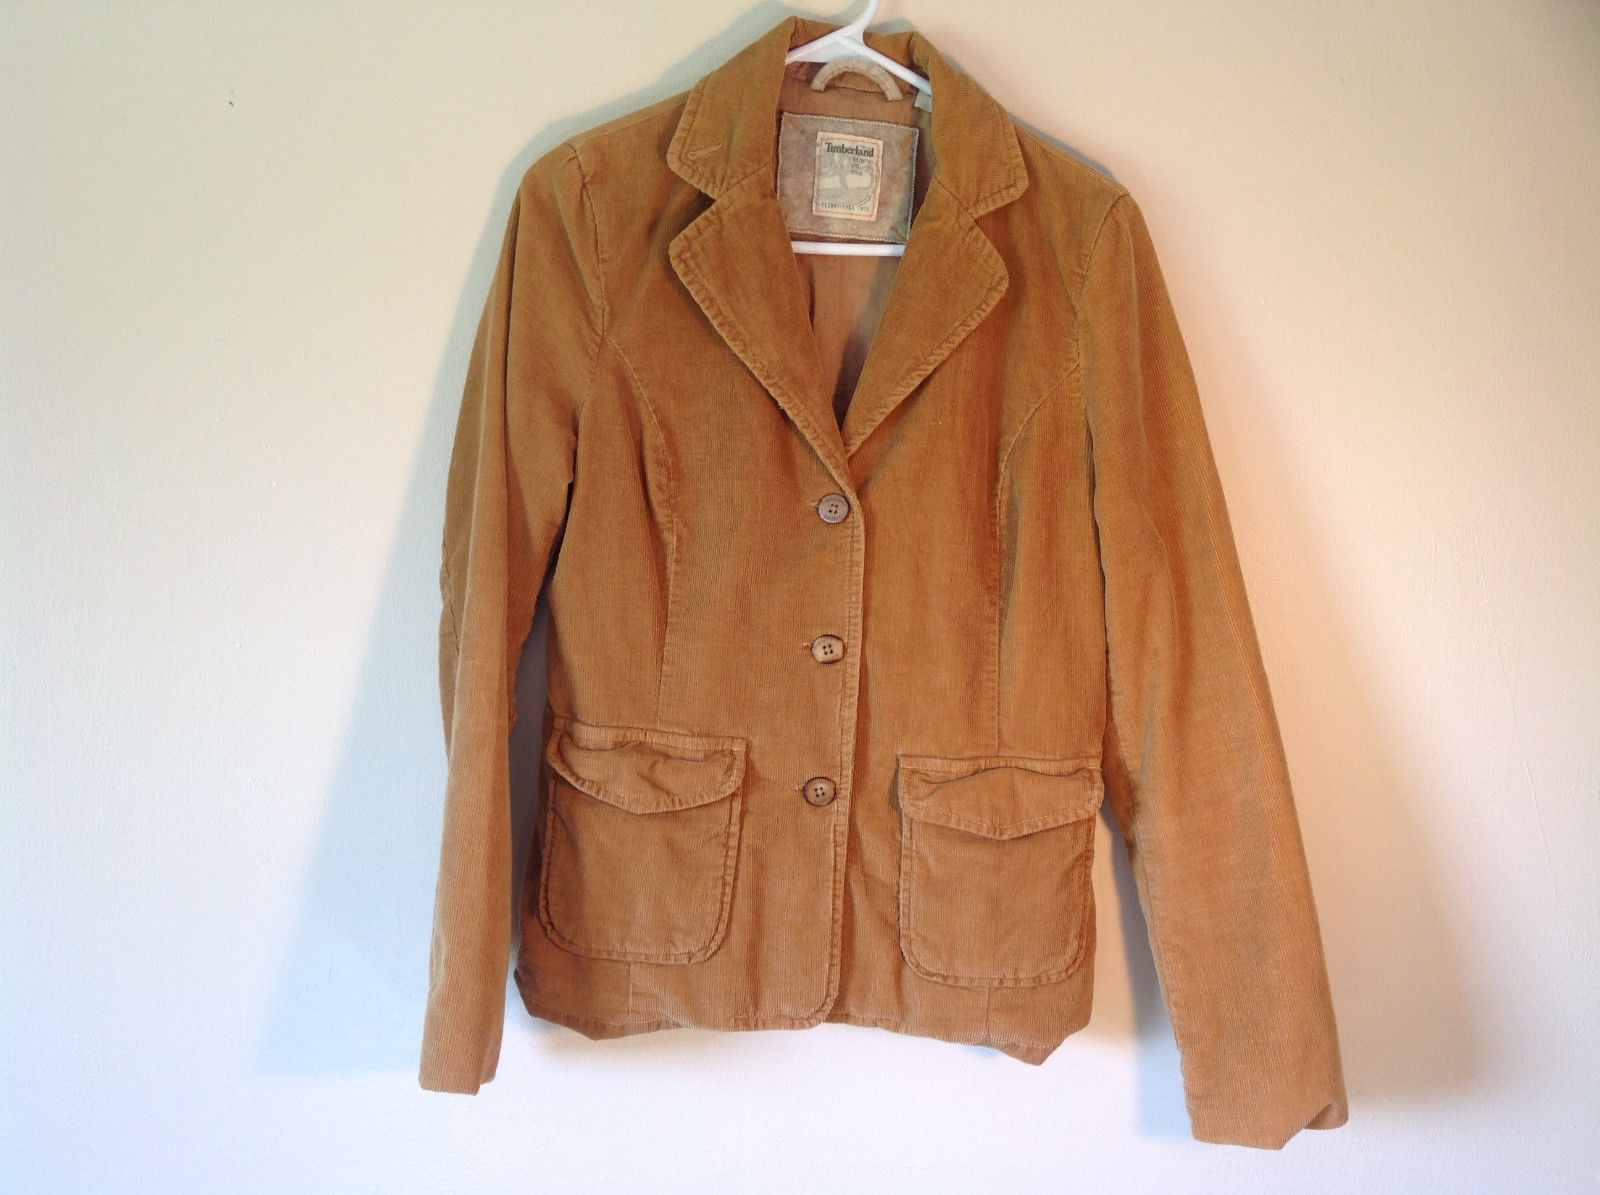 Timberland Brown Corduroy Jacket 2 Front Pockets 3 Button Closure Size 8